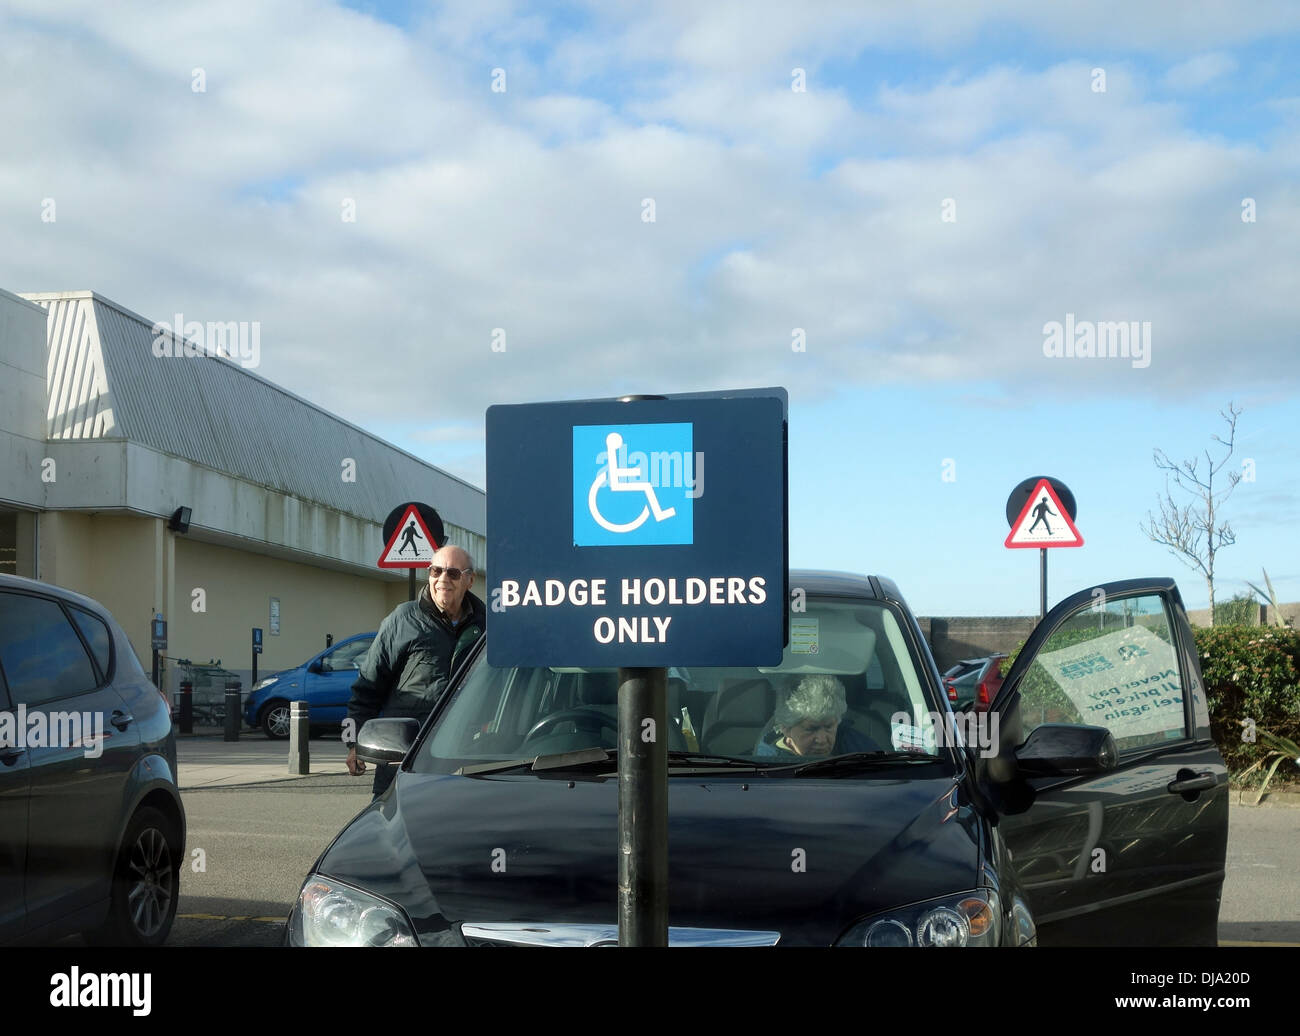 A car parked in a blue badge parking zone for disabled drivers - Stock Image